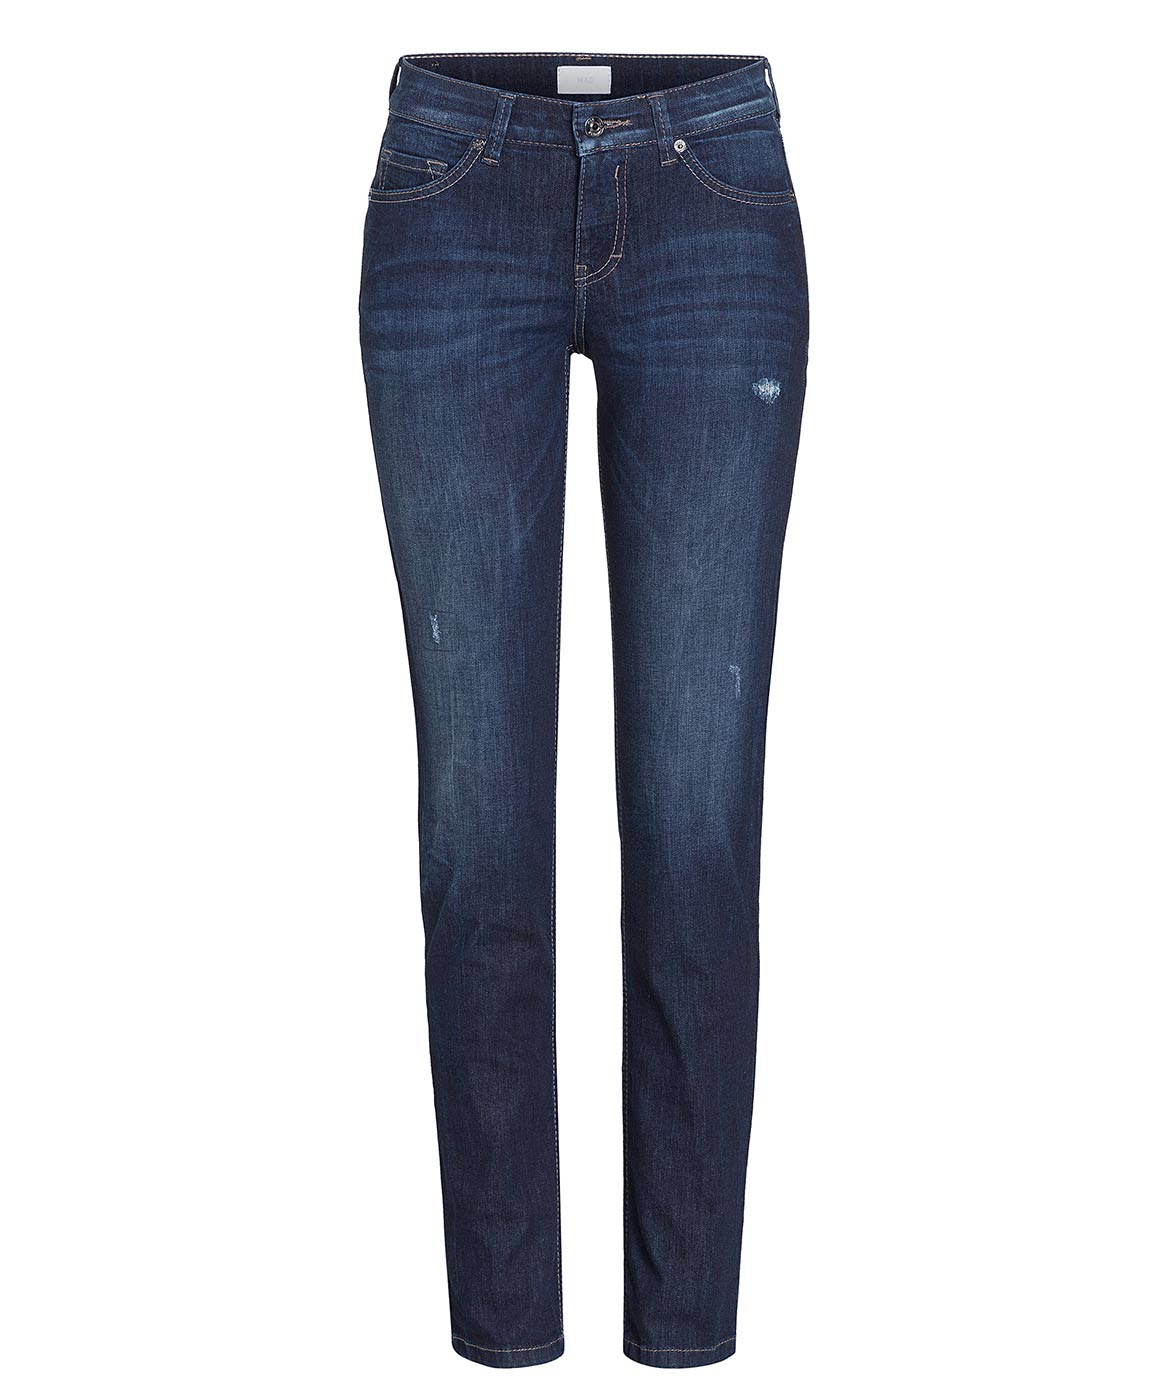 CARRIE PIPE - Straight Fit - Dark Authentic Wash